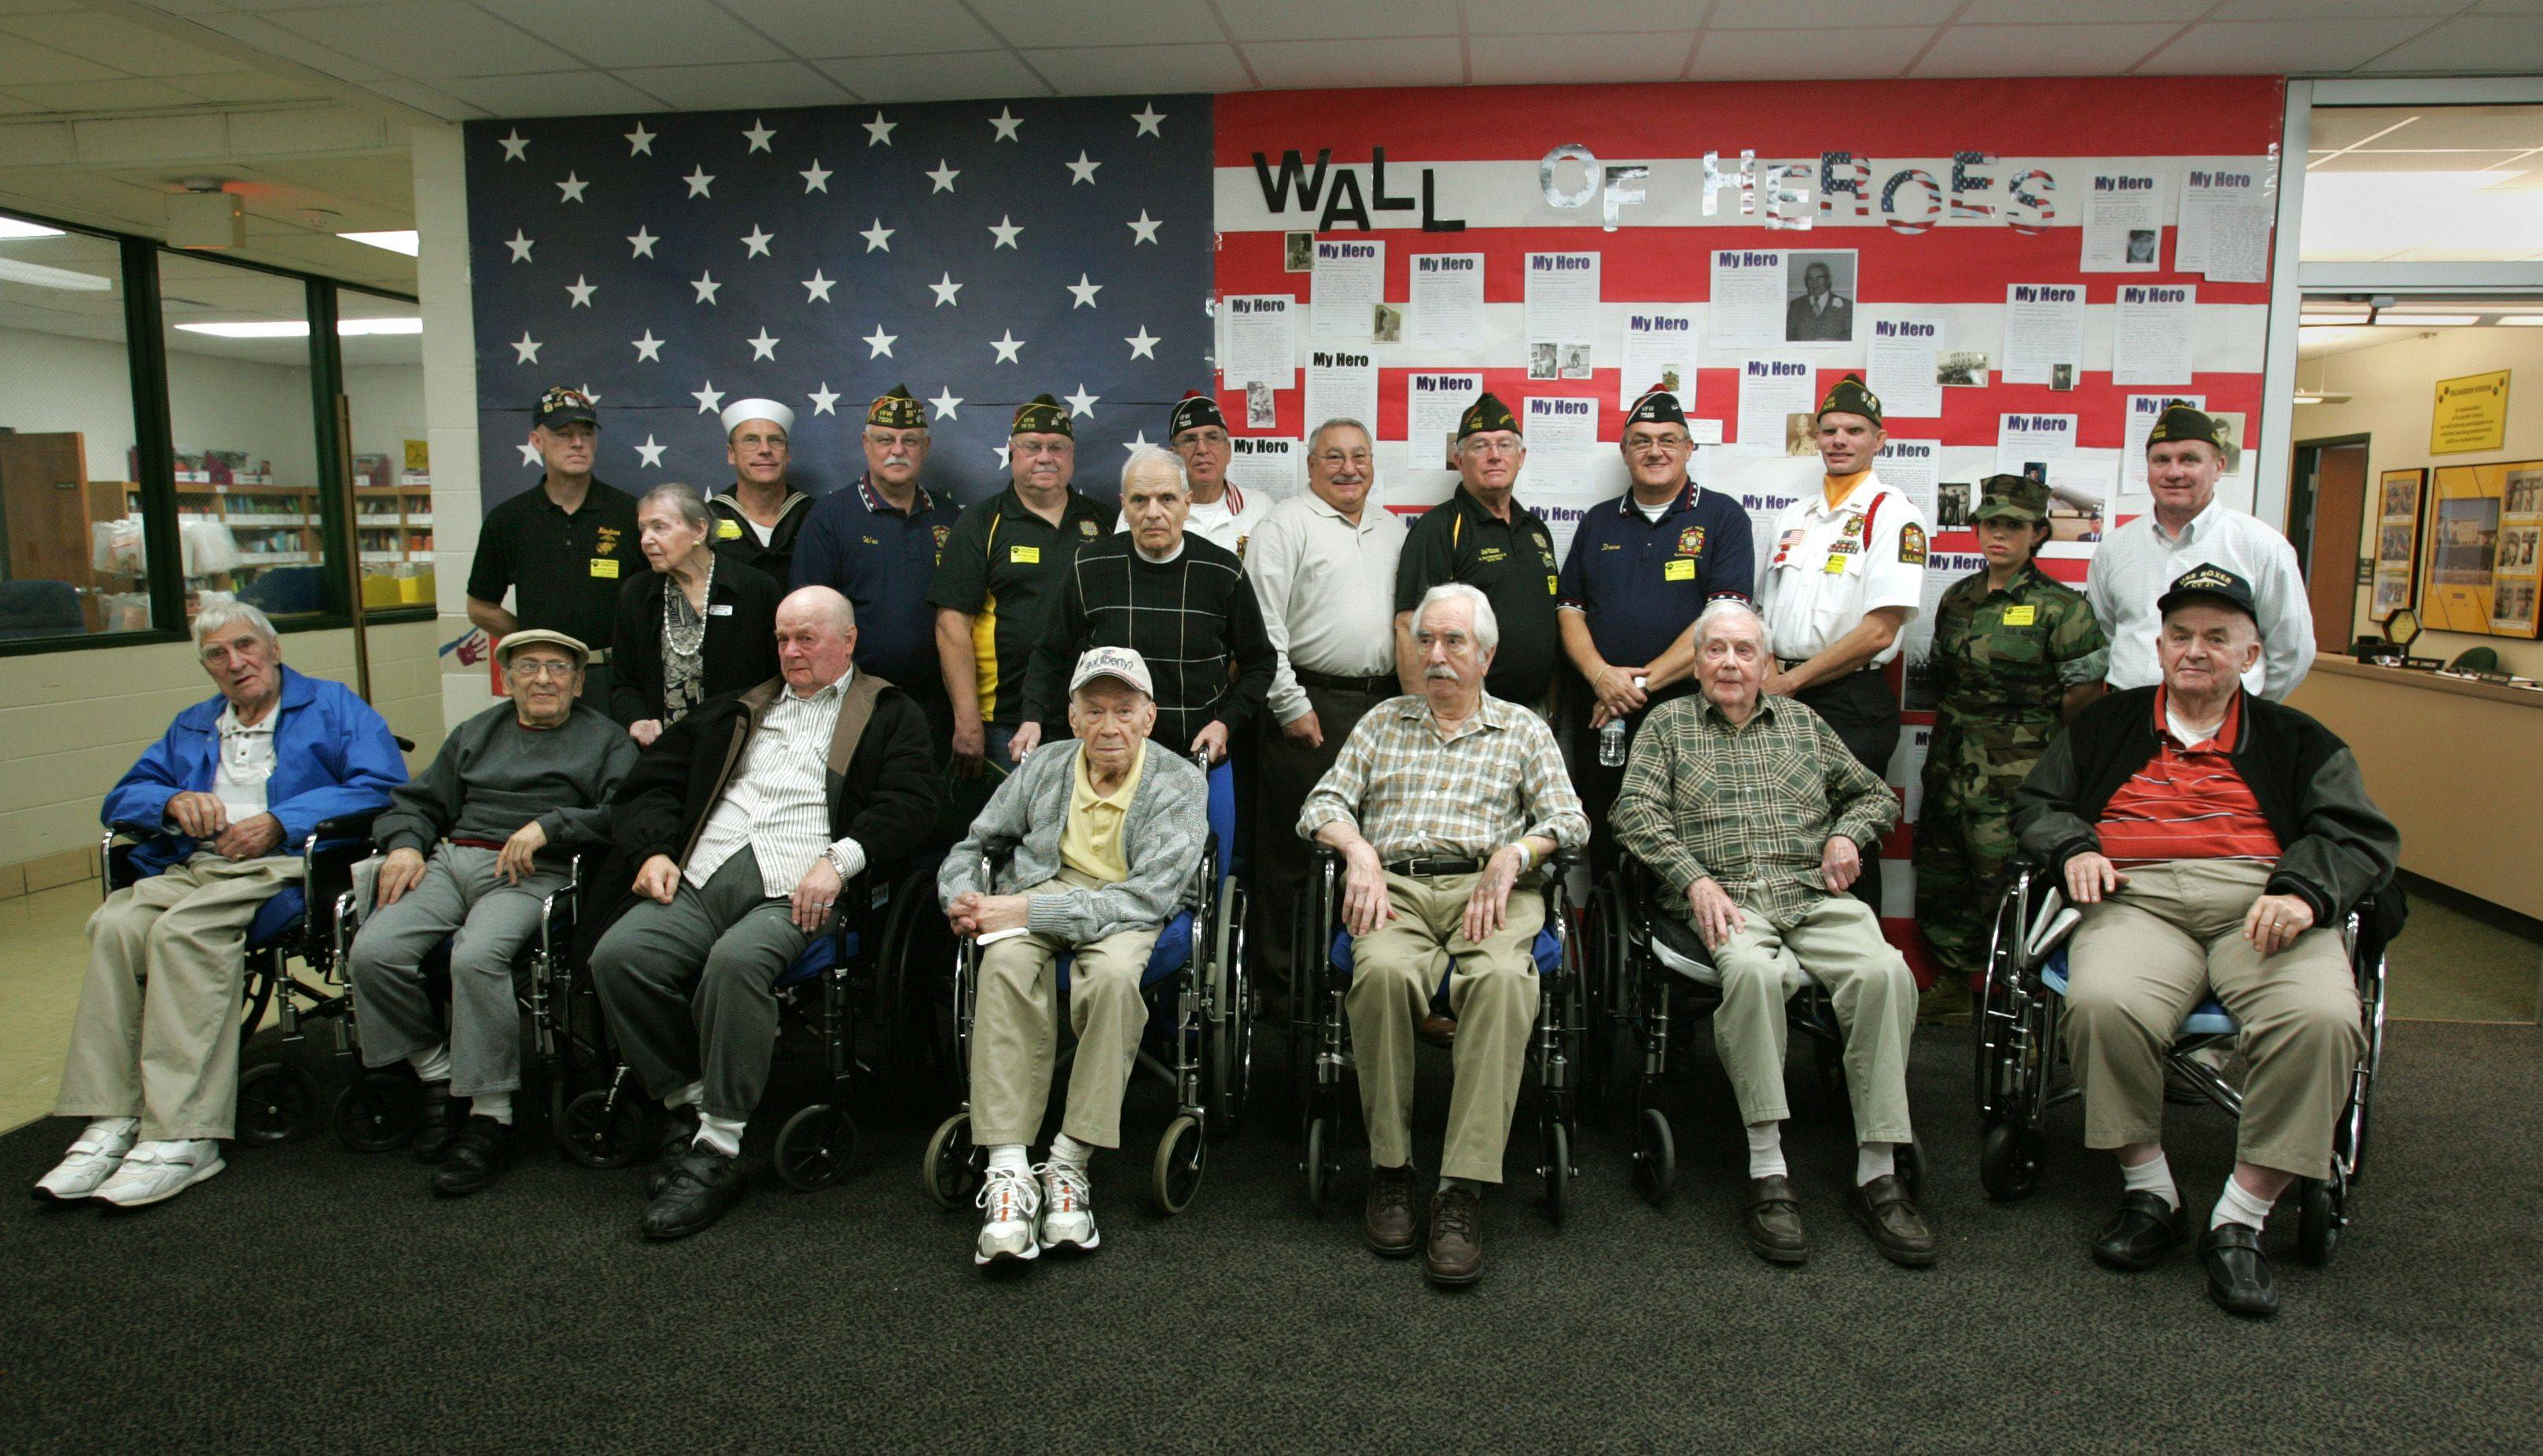 VFW Bloomingdale Post 7539 members stand behind World War II veterans from the Lee Manor Retirement home in Des Plaines, at DuJardin Elementary School in Bloomingdale.